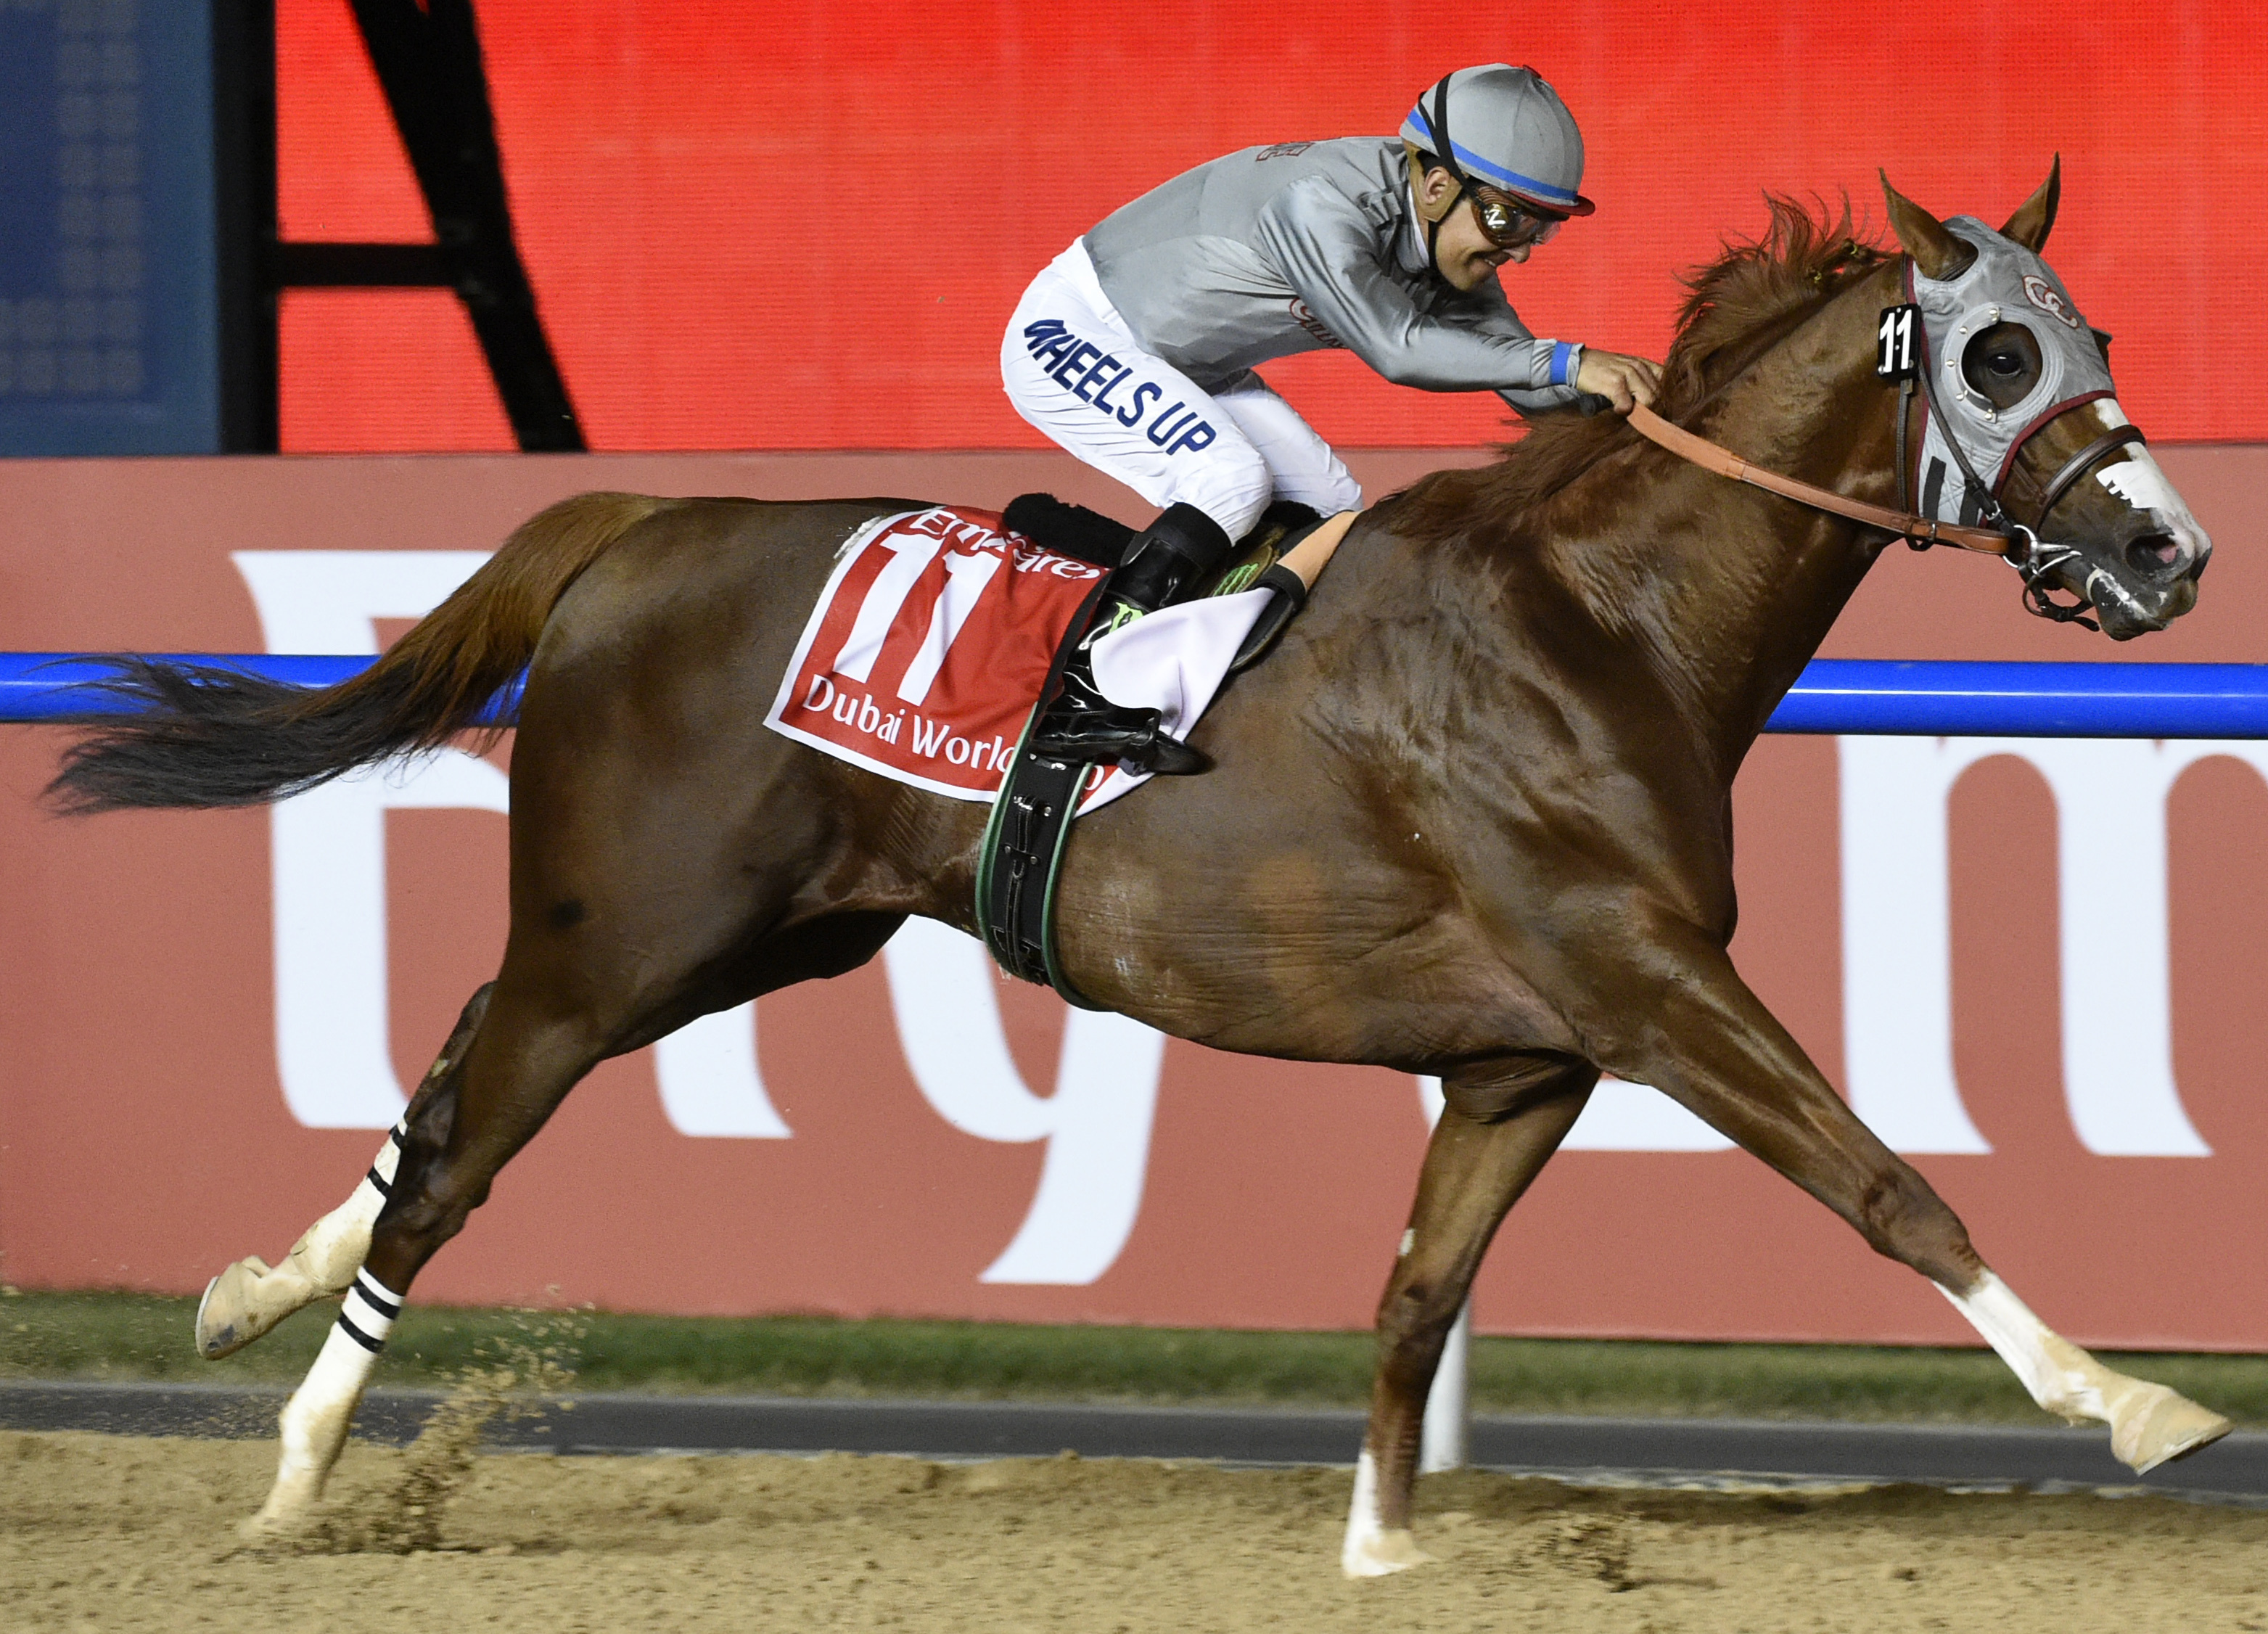 FILE - In this Saturday, March 26, 2016, file photo, California Chrome, ridden by Victor Espinoza, wins the Dubai World Cup horse race at Meydan Racecourse in Dubai, United Arab Emirates. California Chrome was the biggest winner at the Eclipse Awards on S